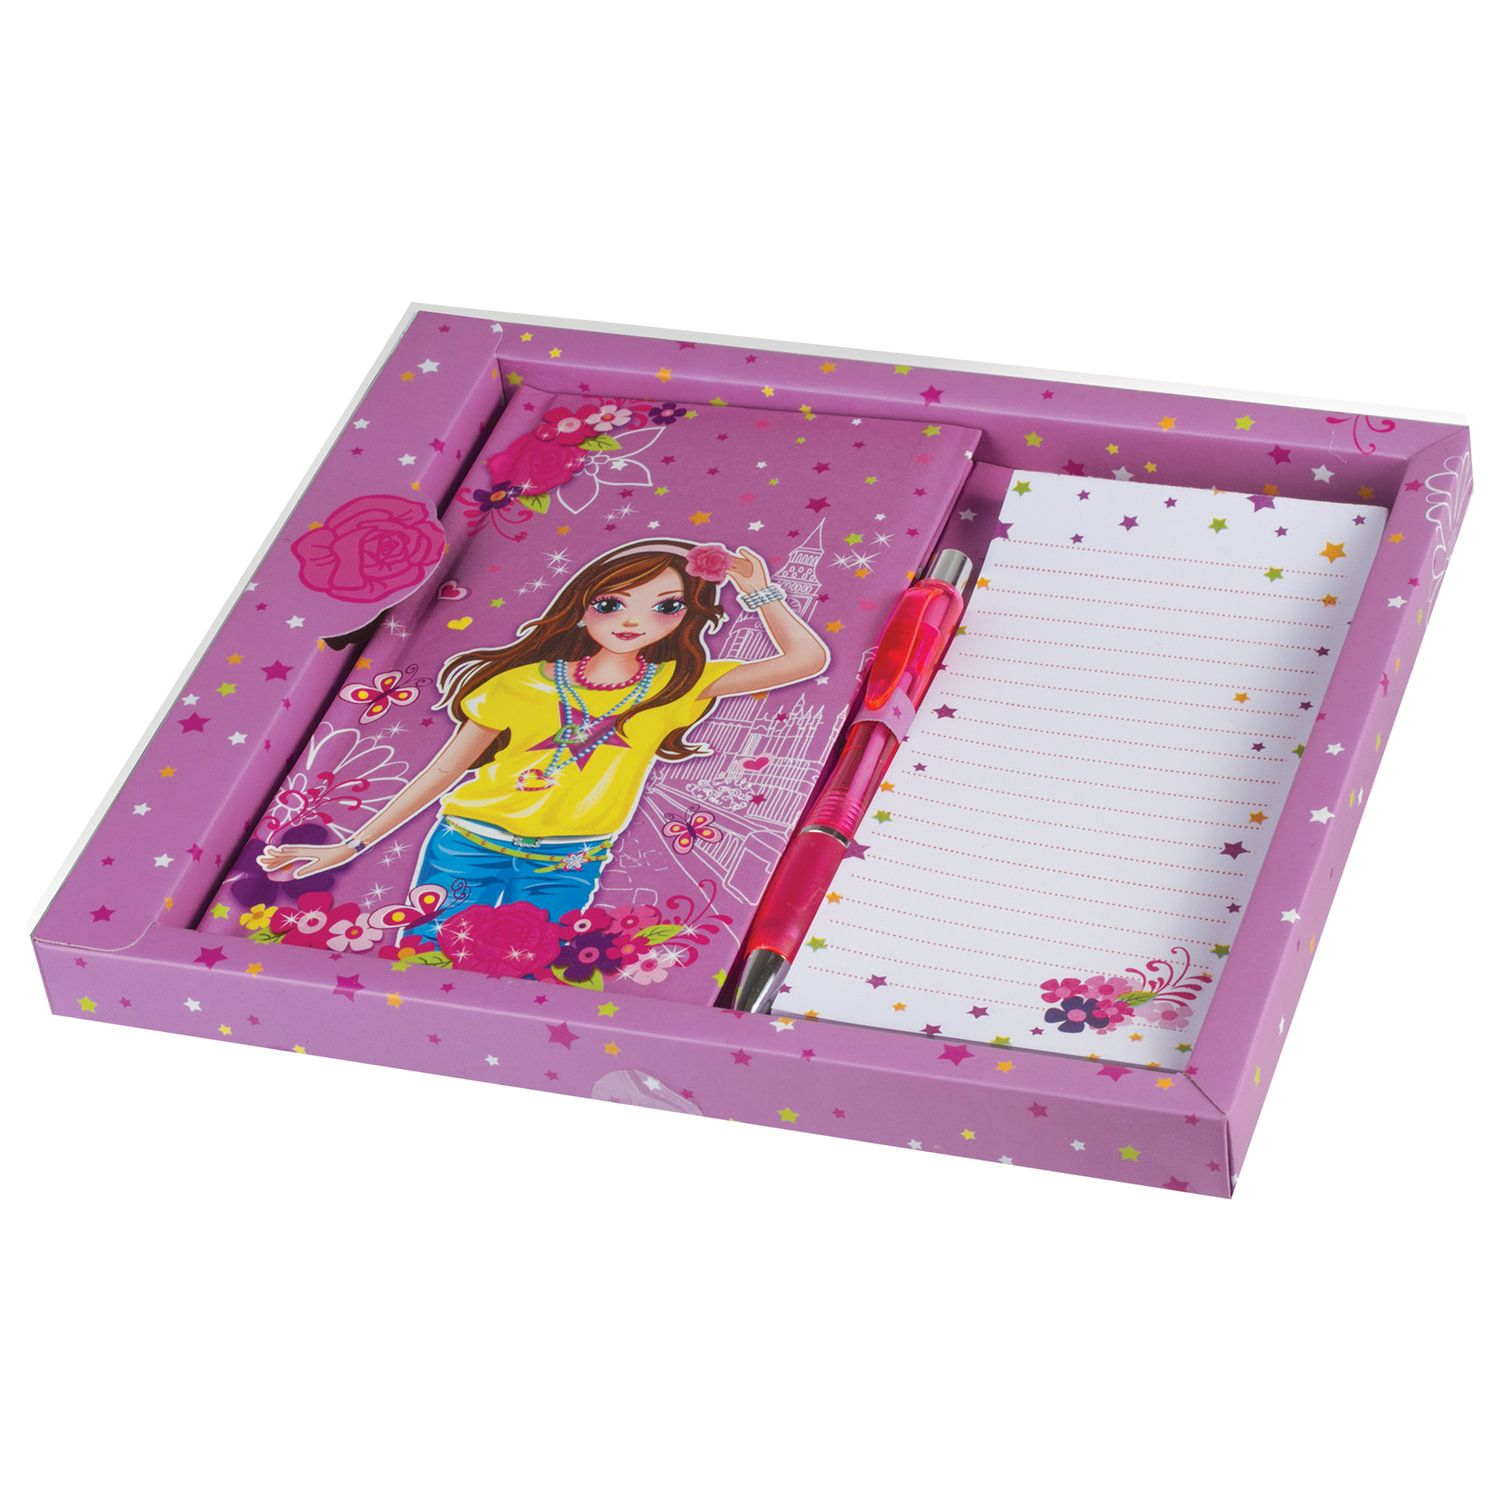 """BRAUBERG / Notebook """"Fashionista"""", 80 sheets A5 (95x170 mm), hardcover, without ruler, pen + block, gift wrapping"""